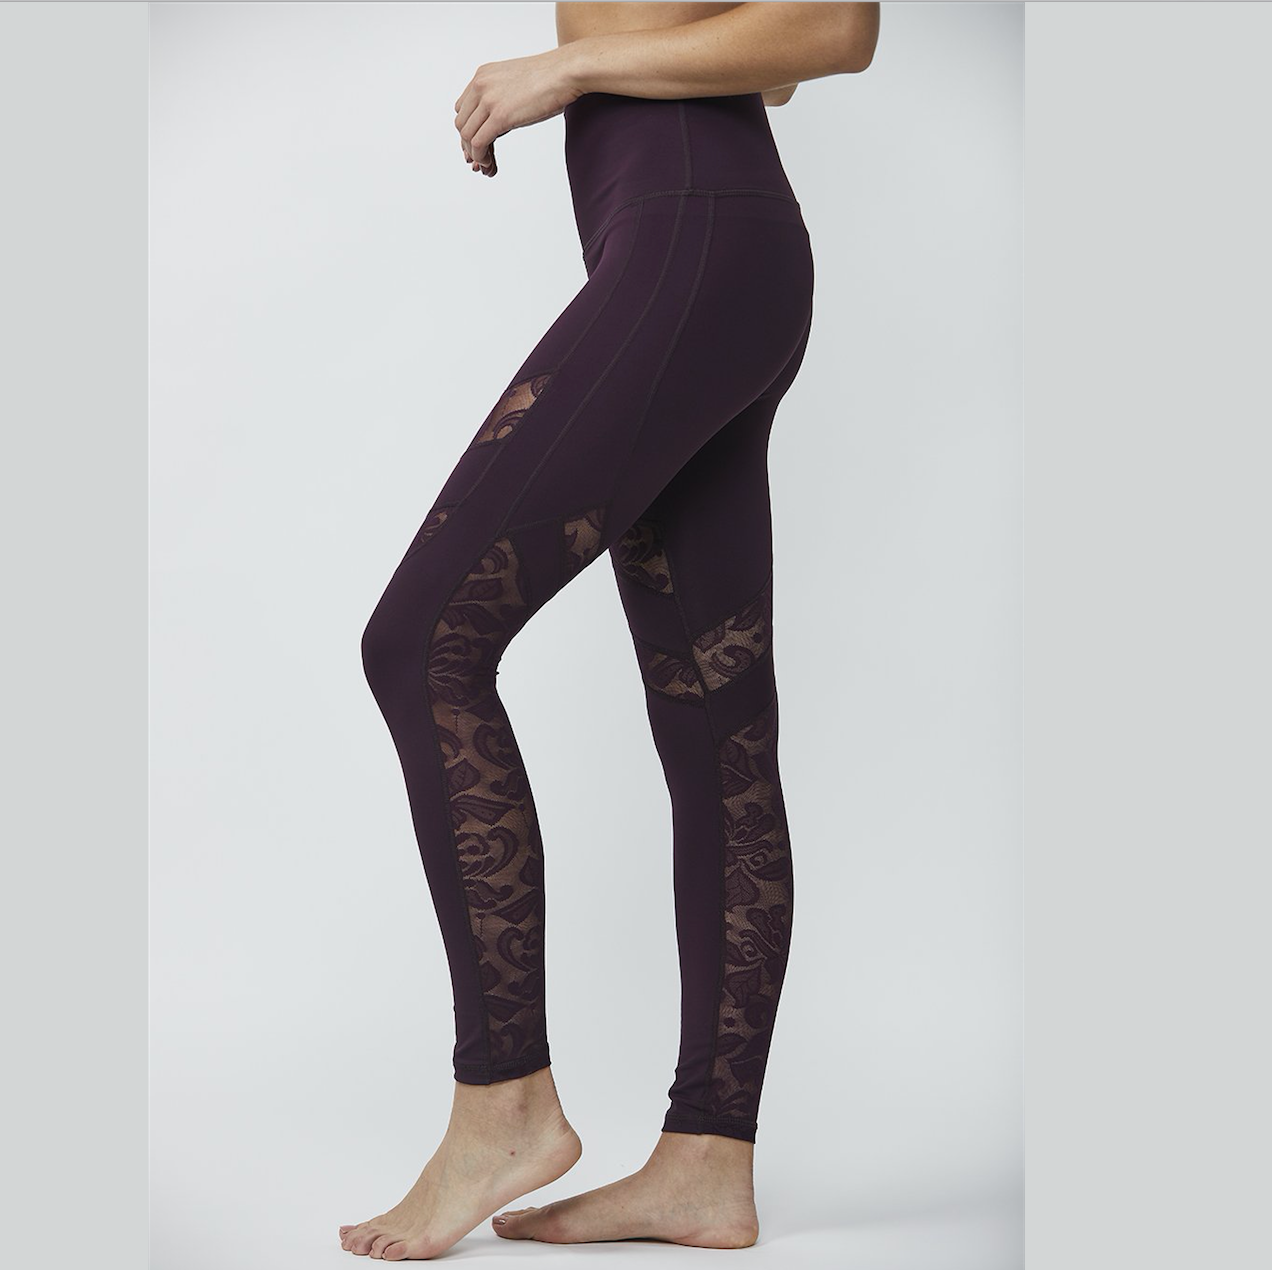 bc62e7405c7 Lace Ready - Burgundy Leggings